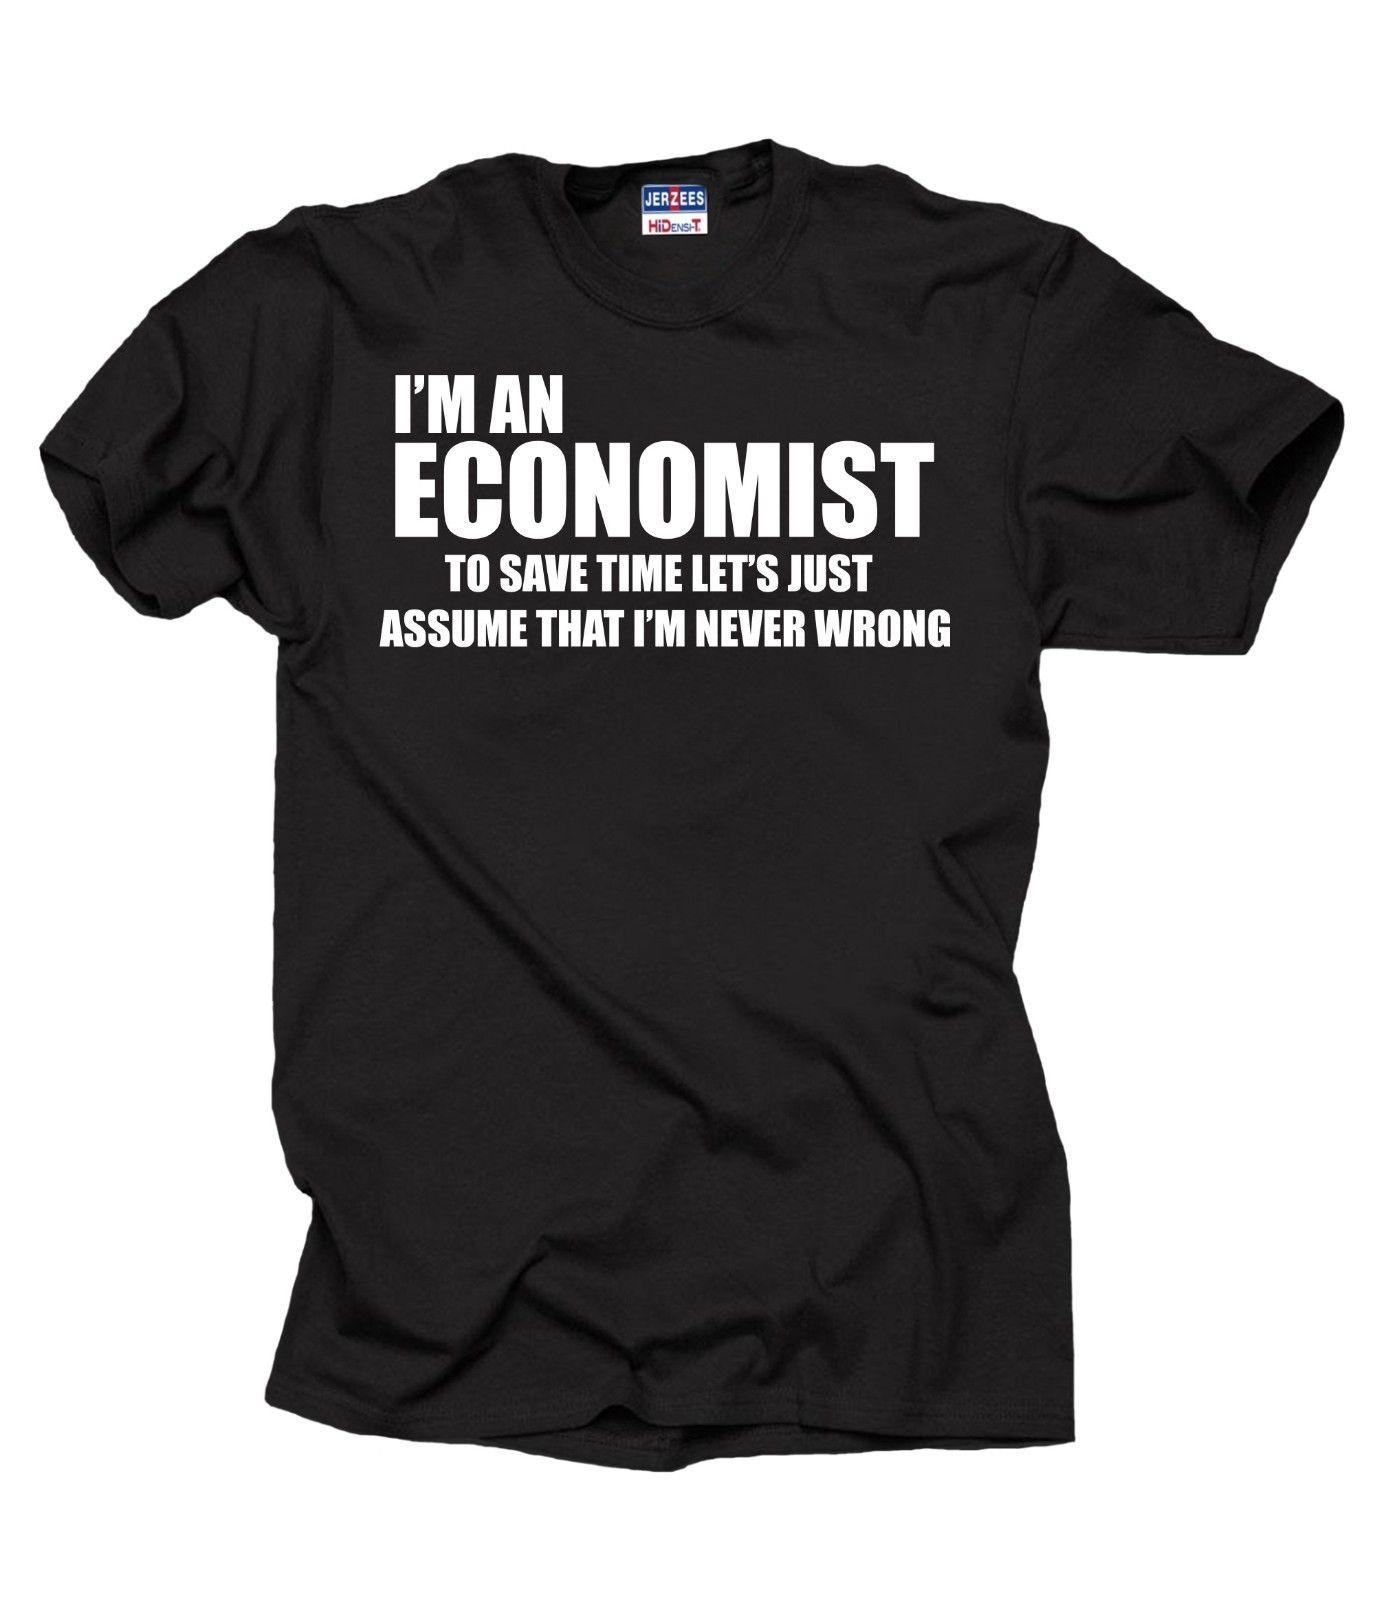 fadc8b75 Funny Economist T Shirt MBA Student Economist Economy Economics Sweater Mens  2018 Fashionable Brand 100%cotton Best Tshirts Cool T Shirts Online From ...